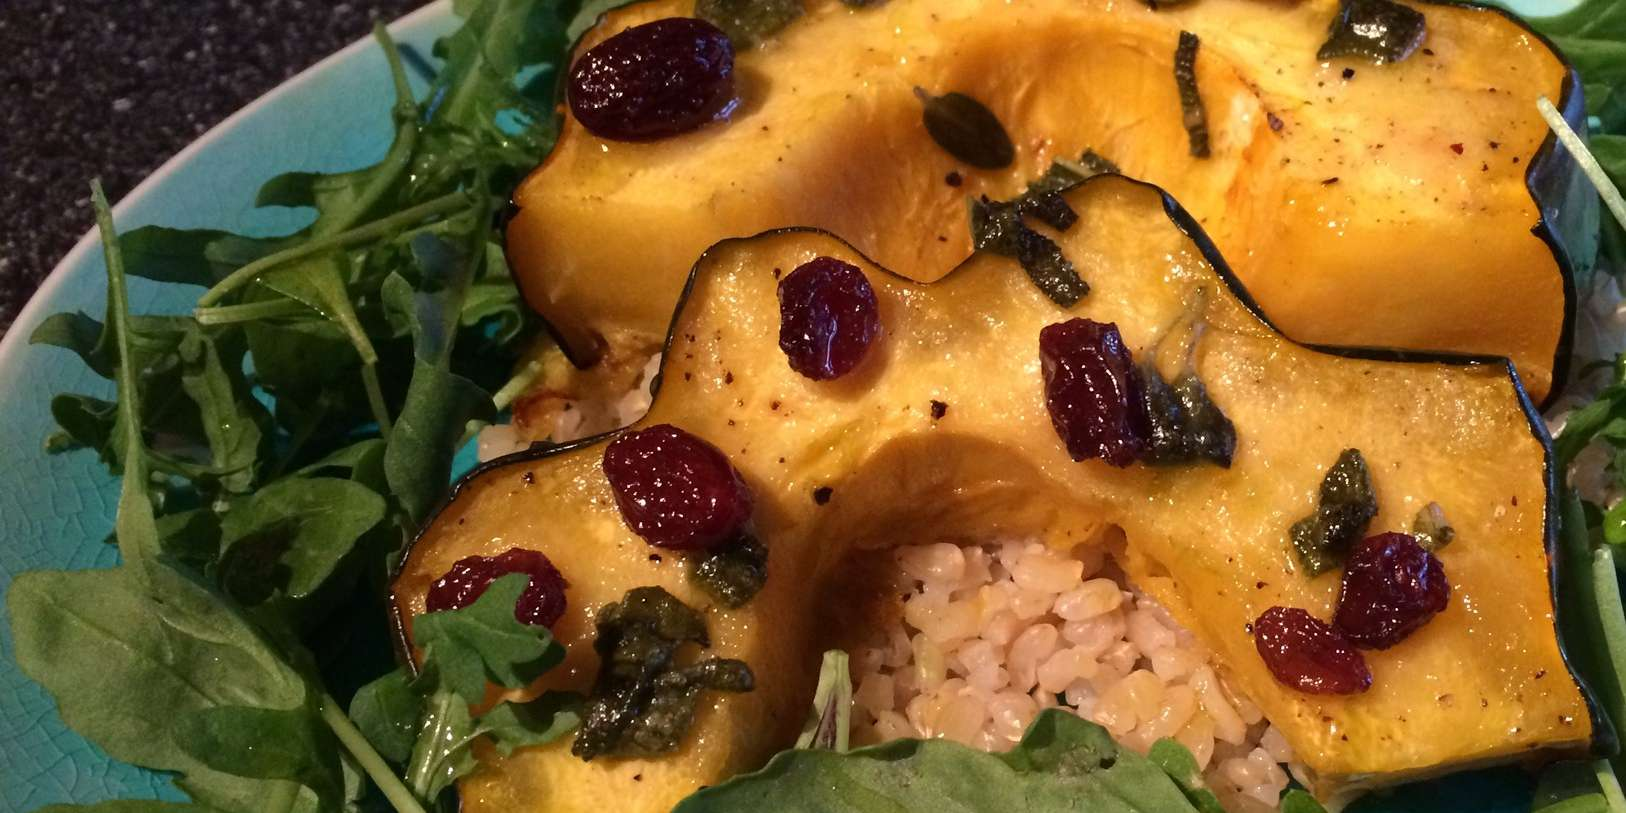 Roasted Acorn Squash with Sage Butter and Raisins